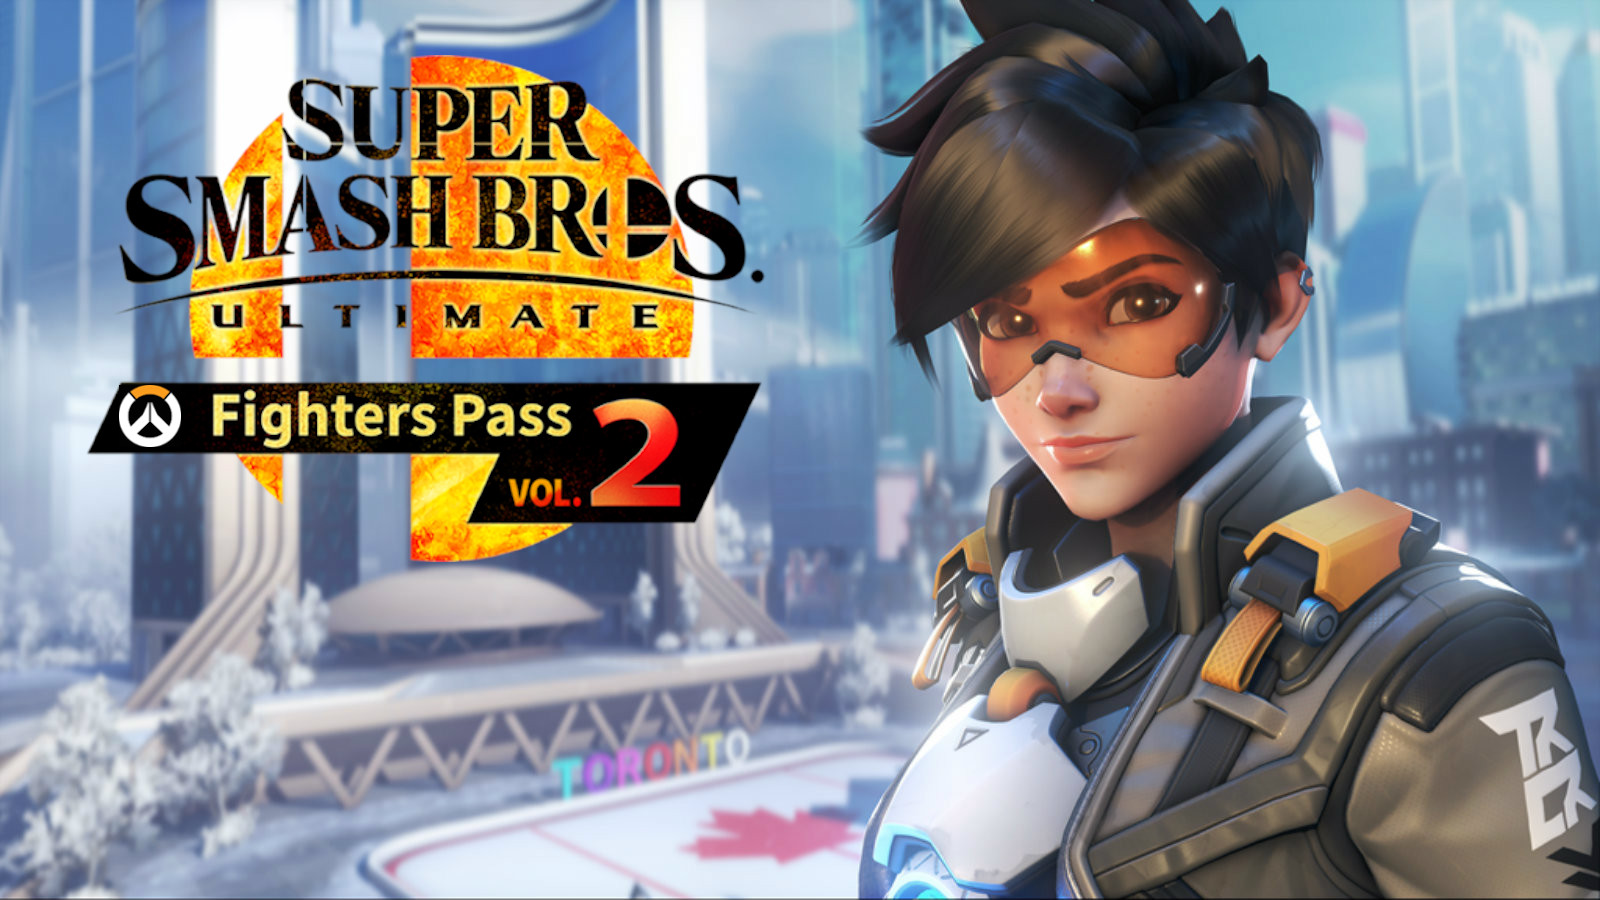 Tracer Overwatch Super Smash Bros. Ultimate